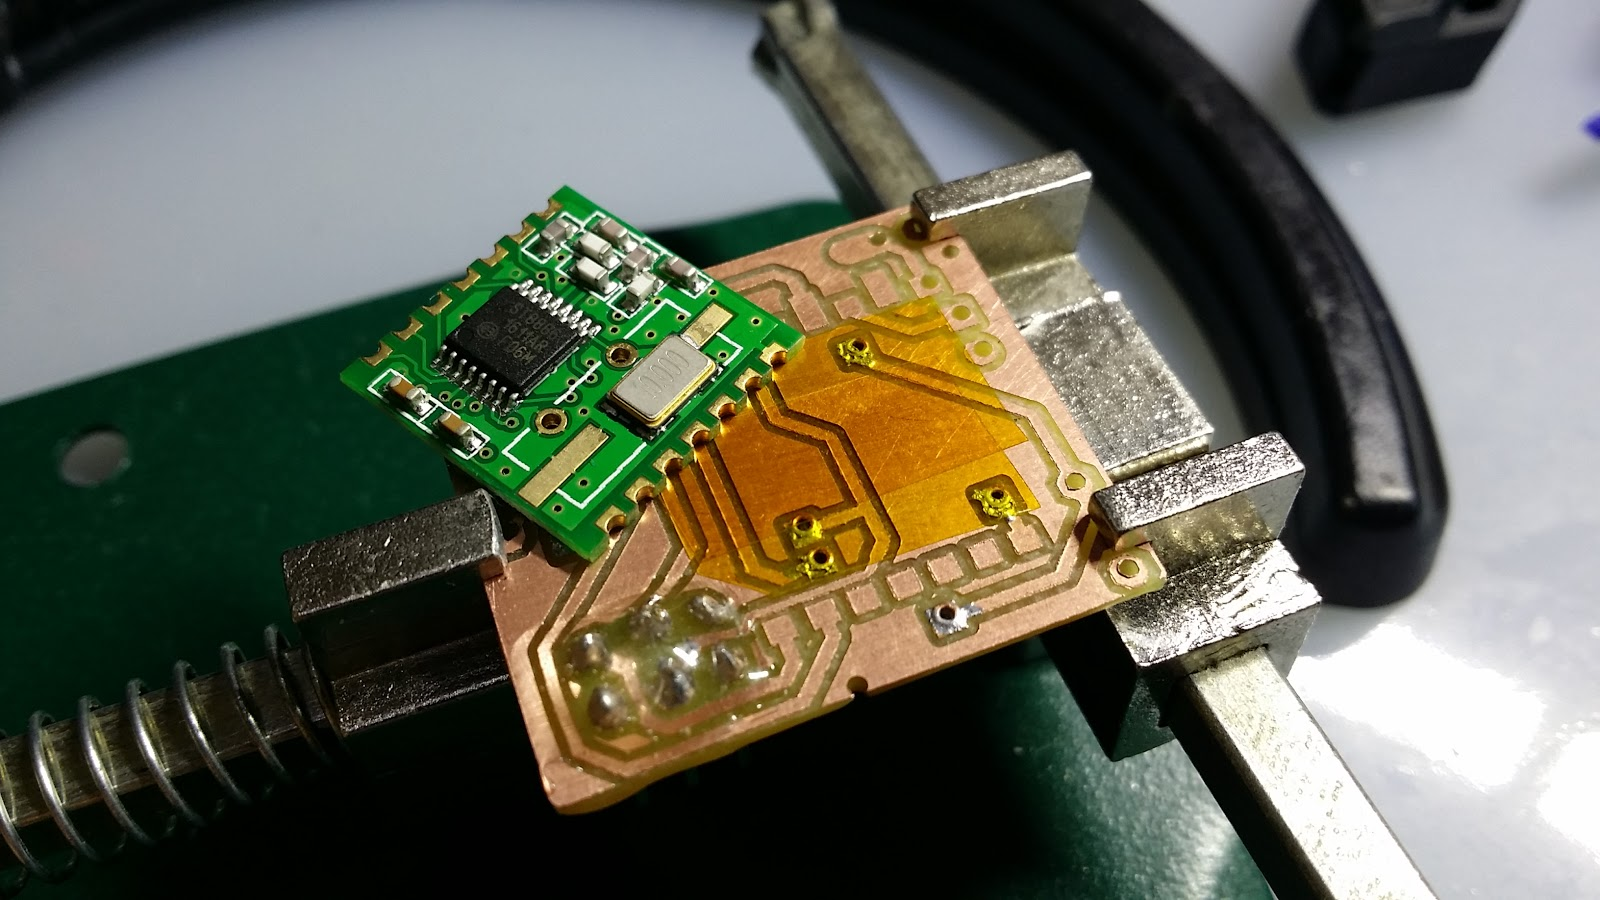 Oz For Us Using Pcb Rivets Vias Homemade Double Sided How To Solder A Circuit Board Proved Another Advantage There Are No Protruding Soldering Points Like When Wire Is Used Instead The I Still Piece Of Kapton